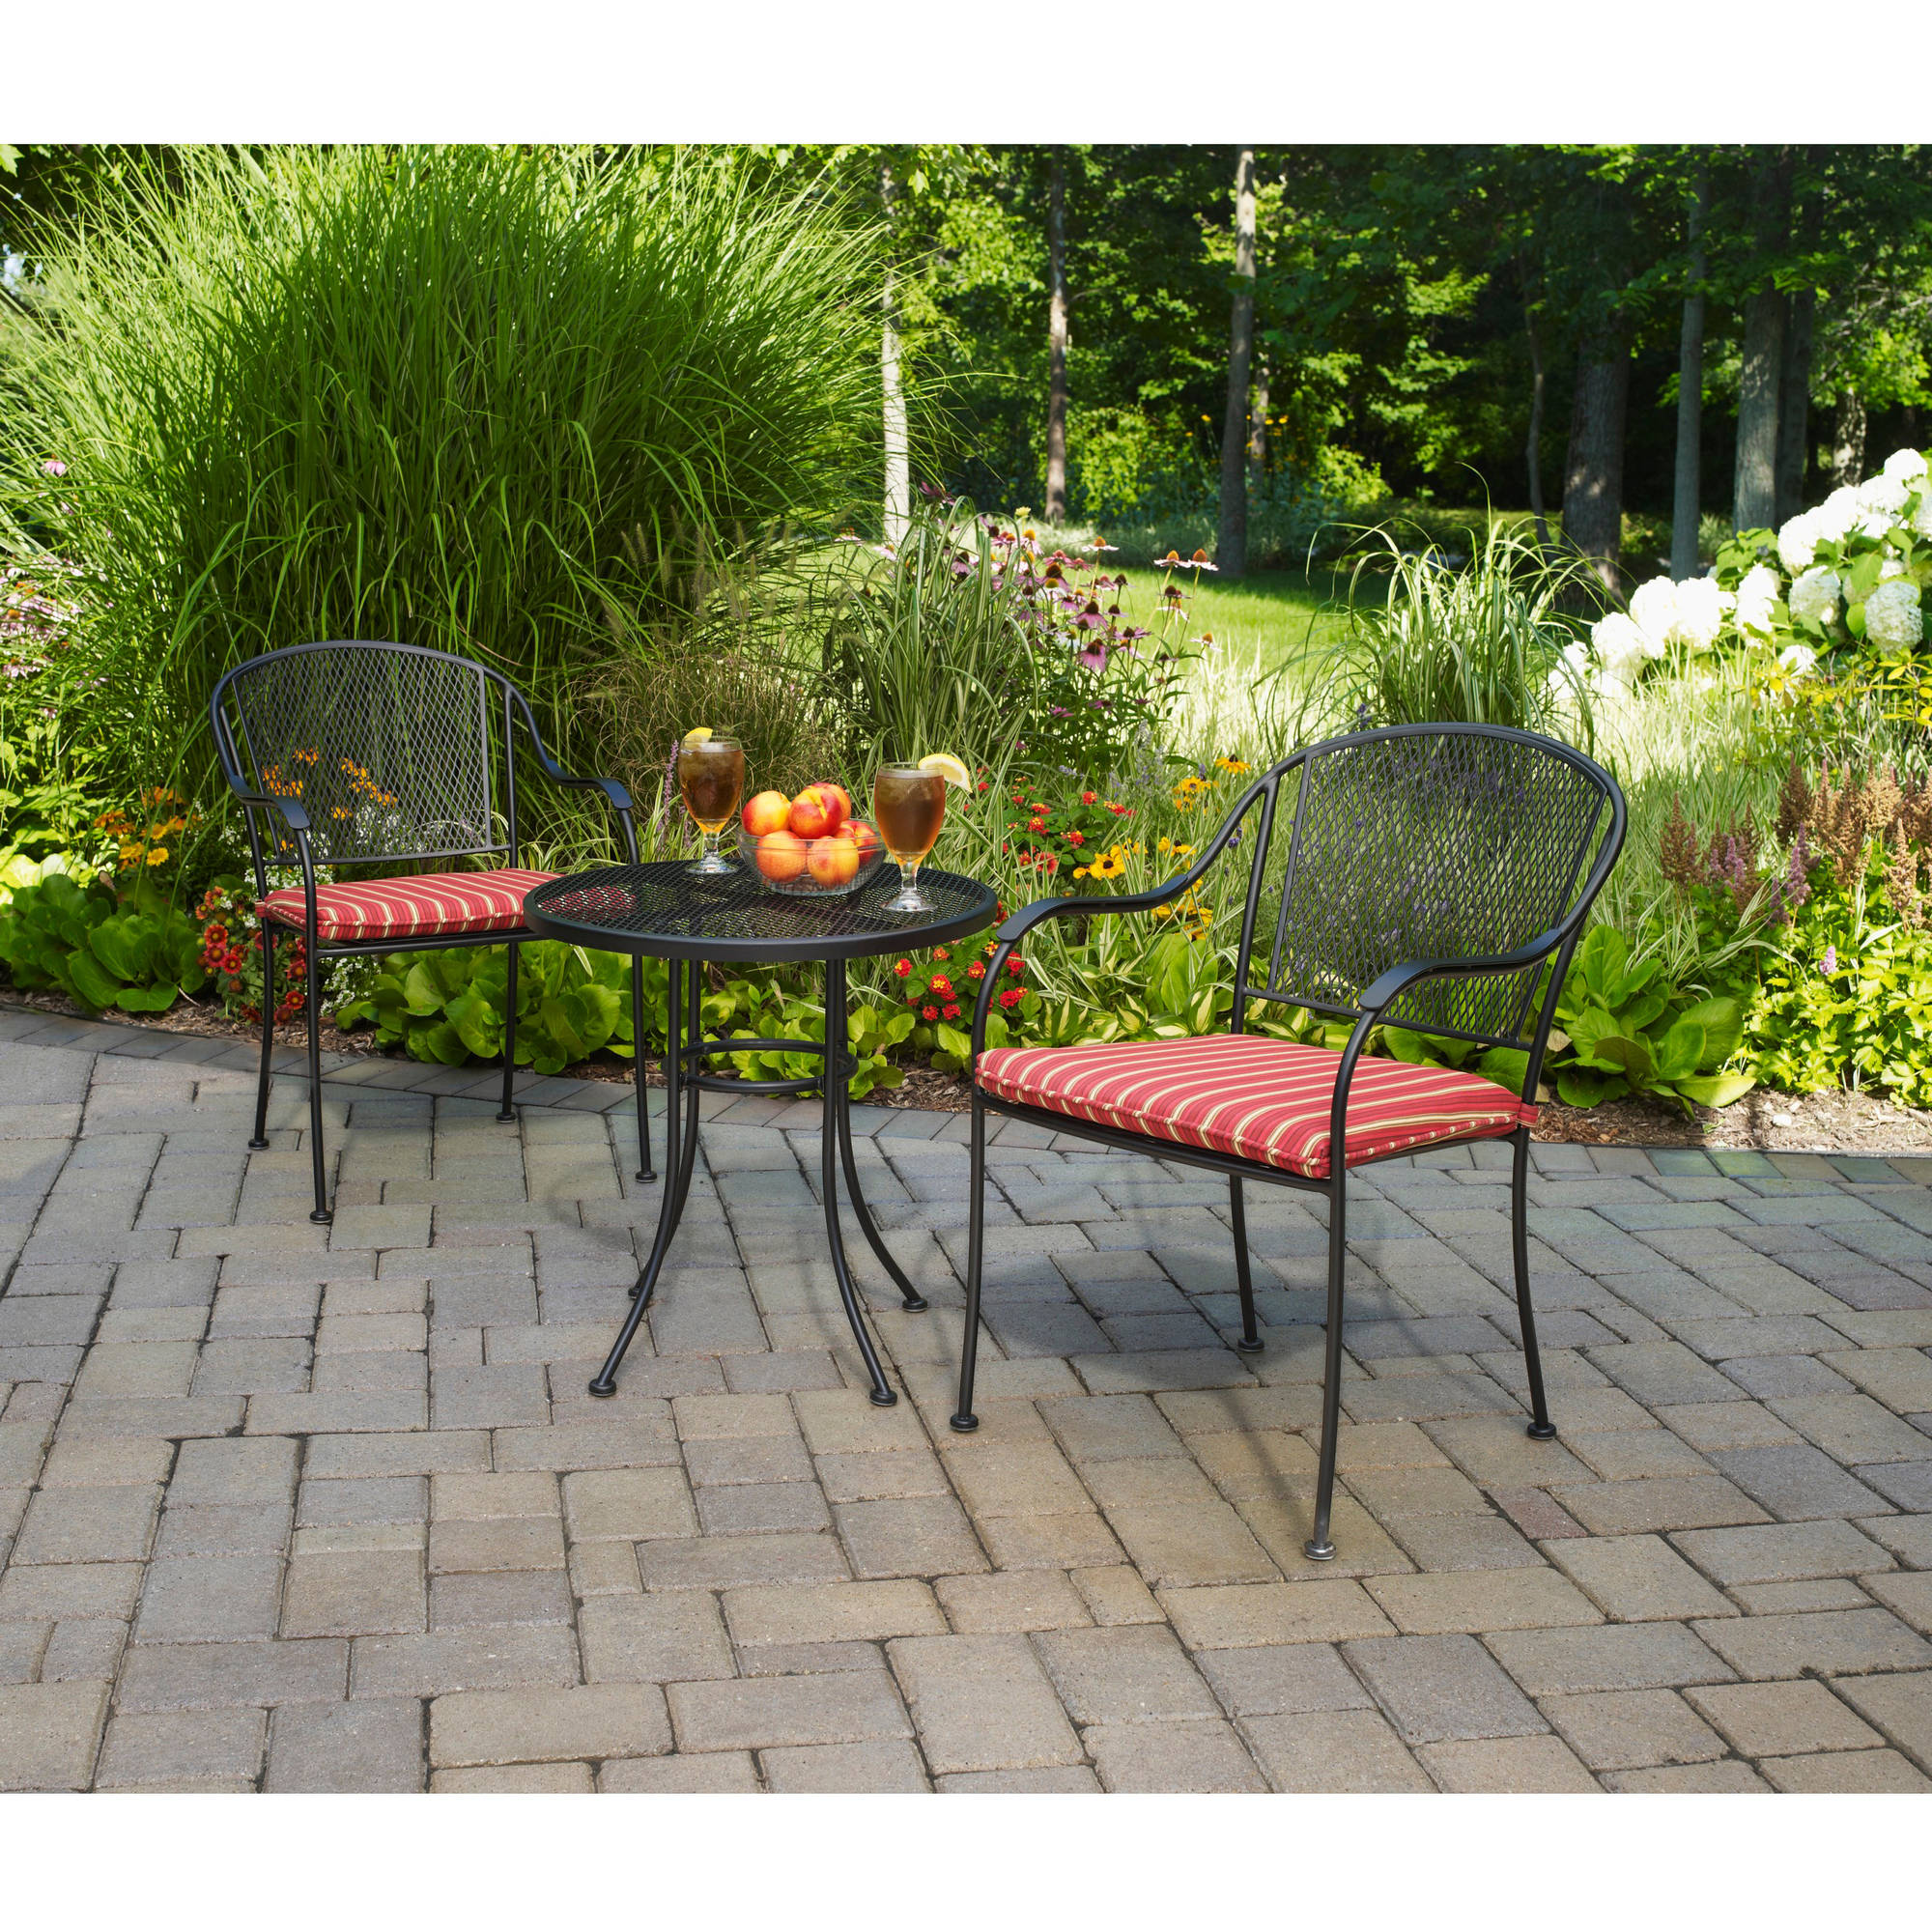 Details About Mainstays Wrought Iron 3 Piece Outdoor Bistro Set Seats 2